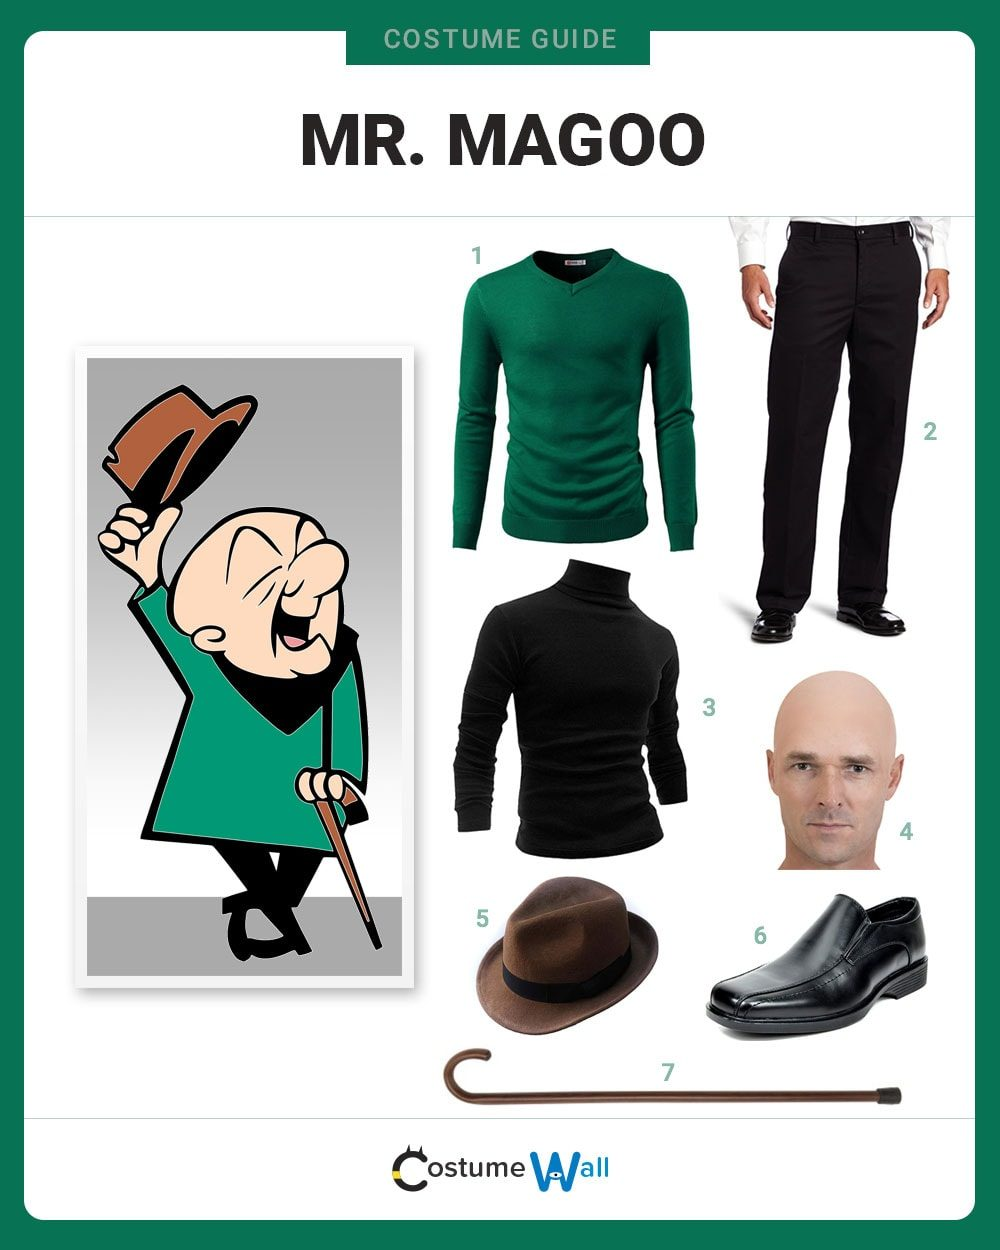 Mr. Magoo Costume Guide